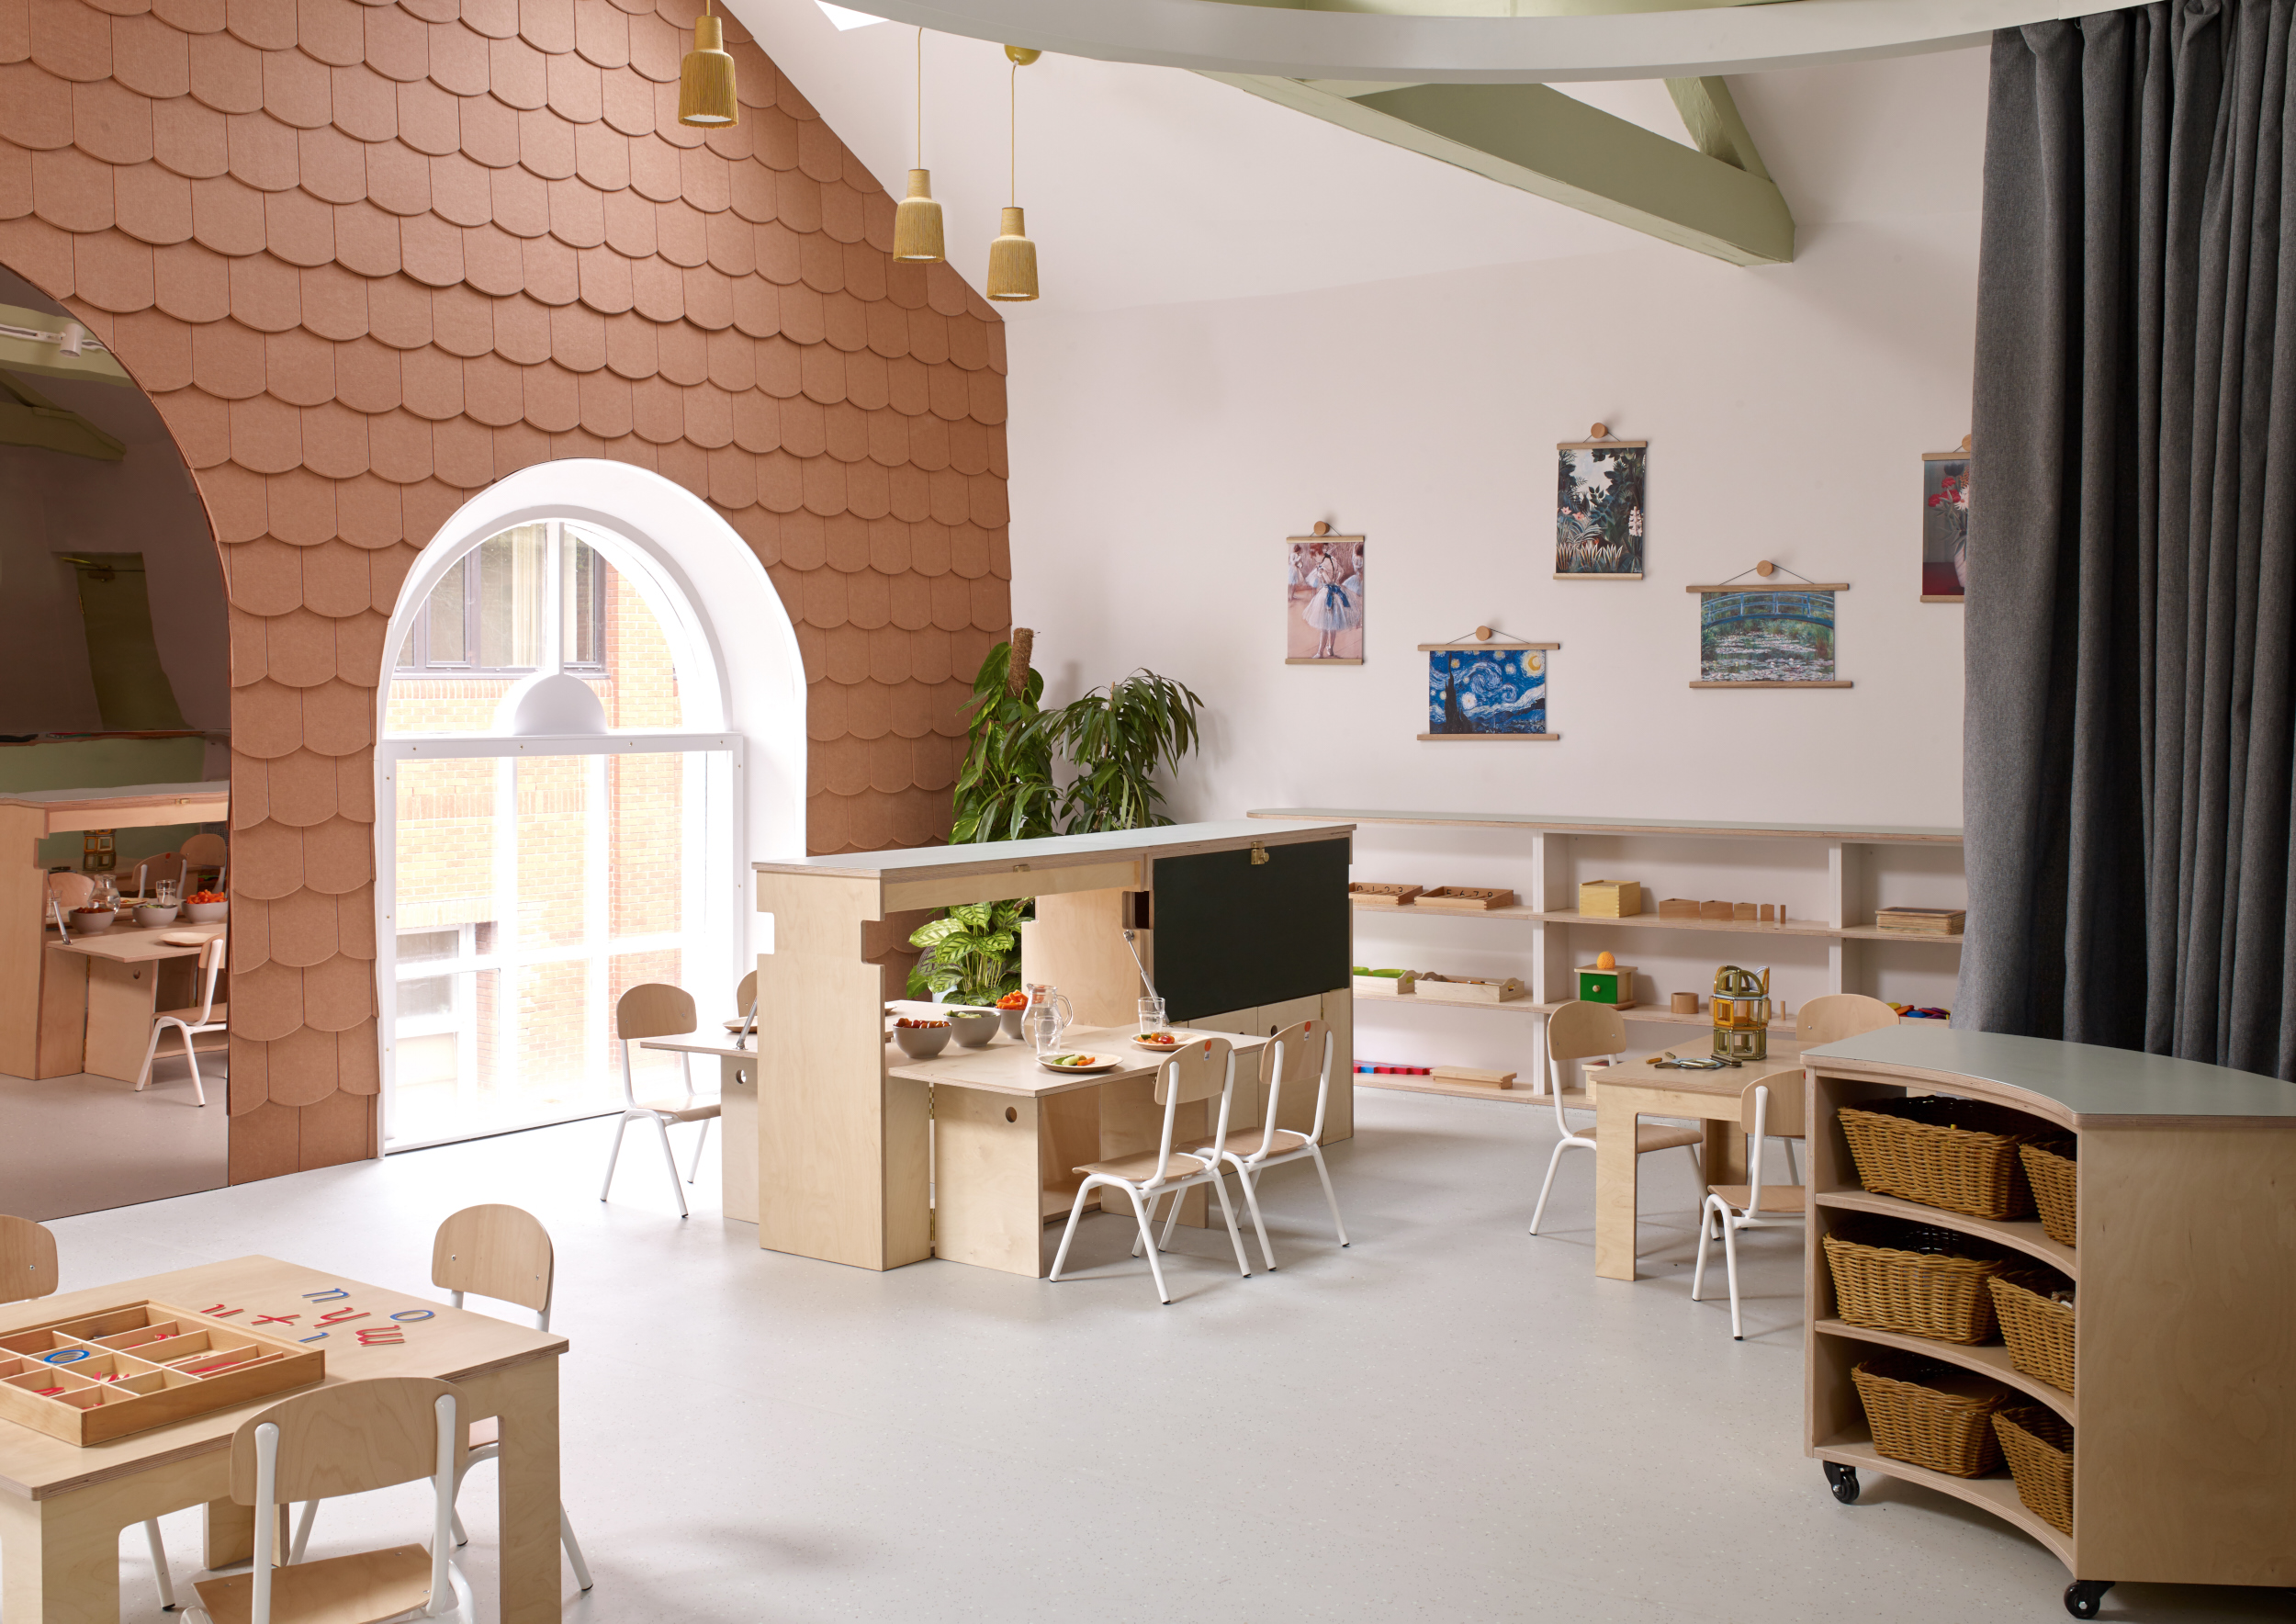 The interior of one of our nursery rooms at Twickenham, with multiple areas for children to learn and explore